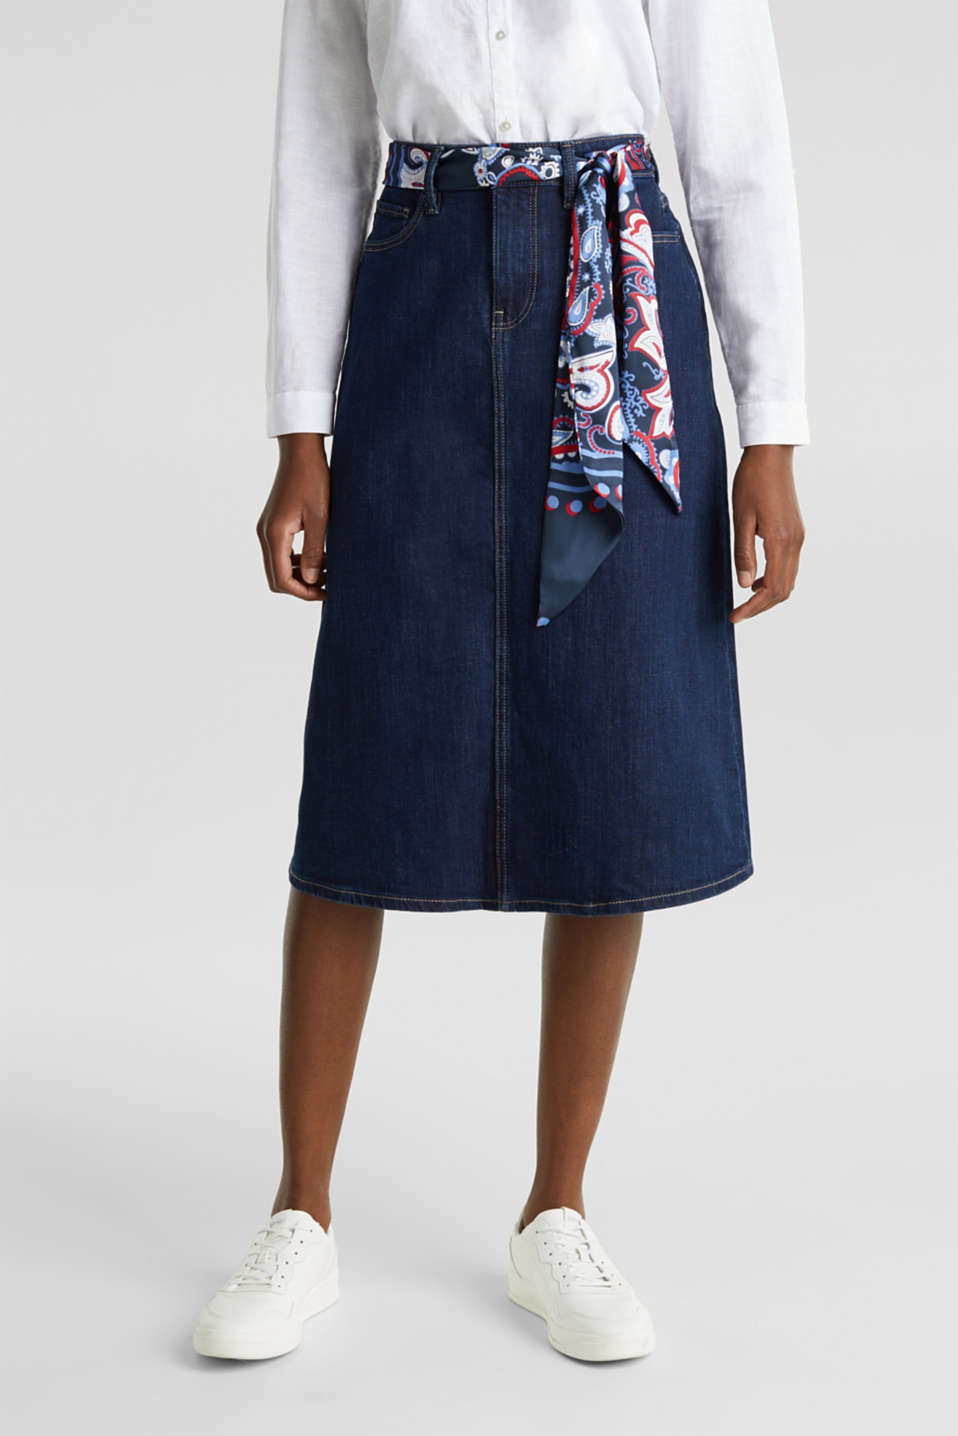 Esprit - Denim skirt with a bandana tie-around belt